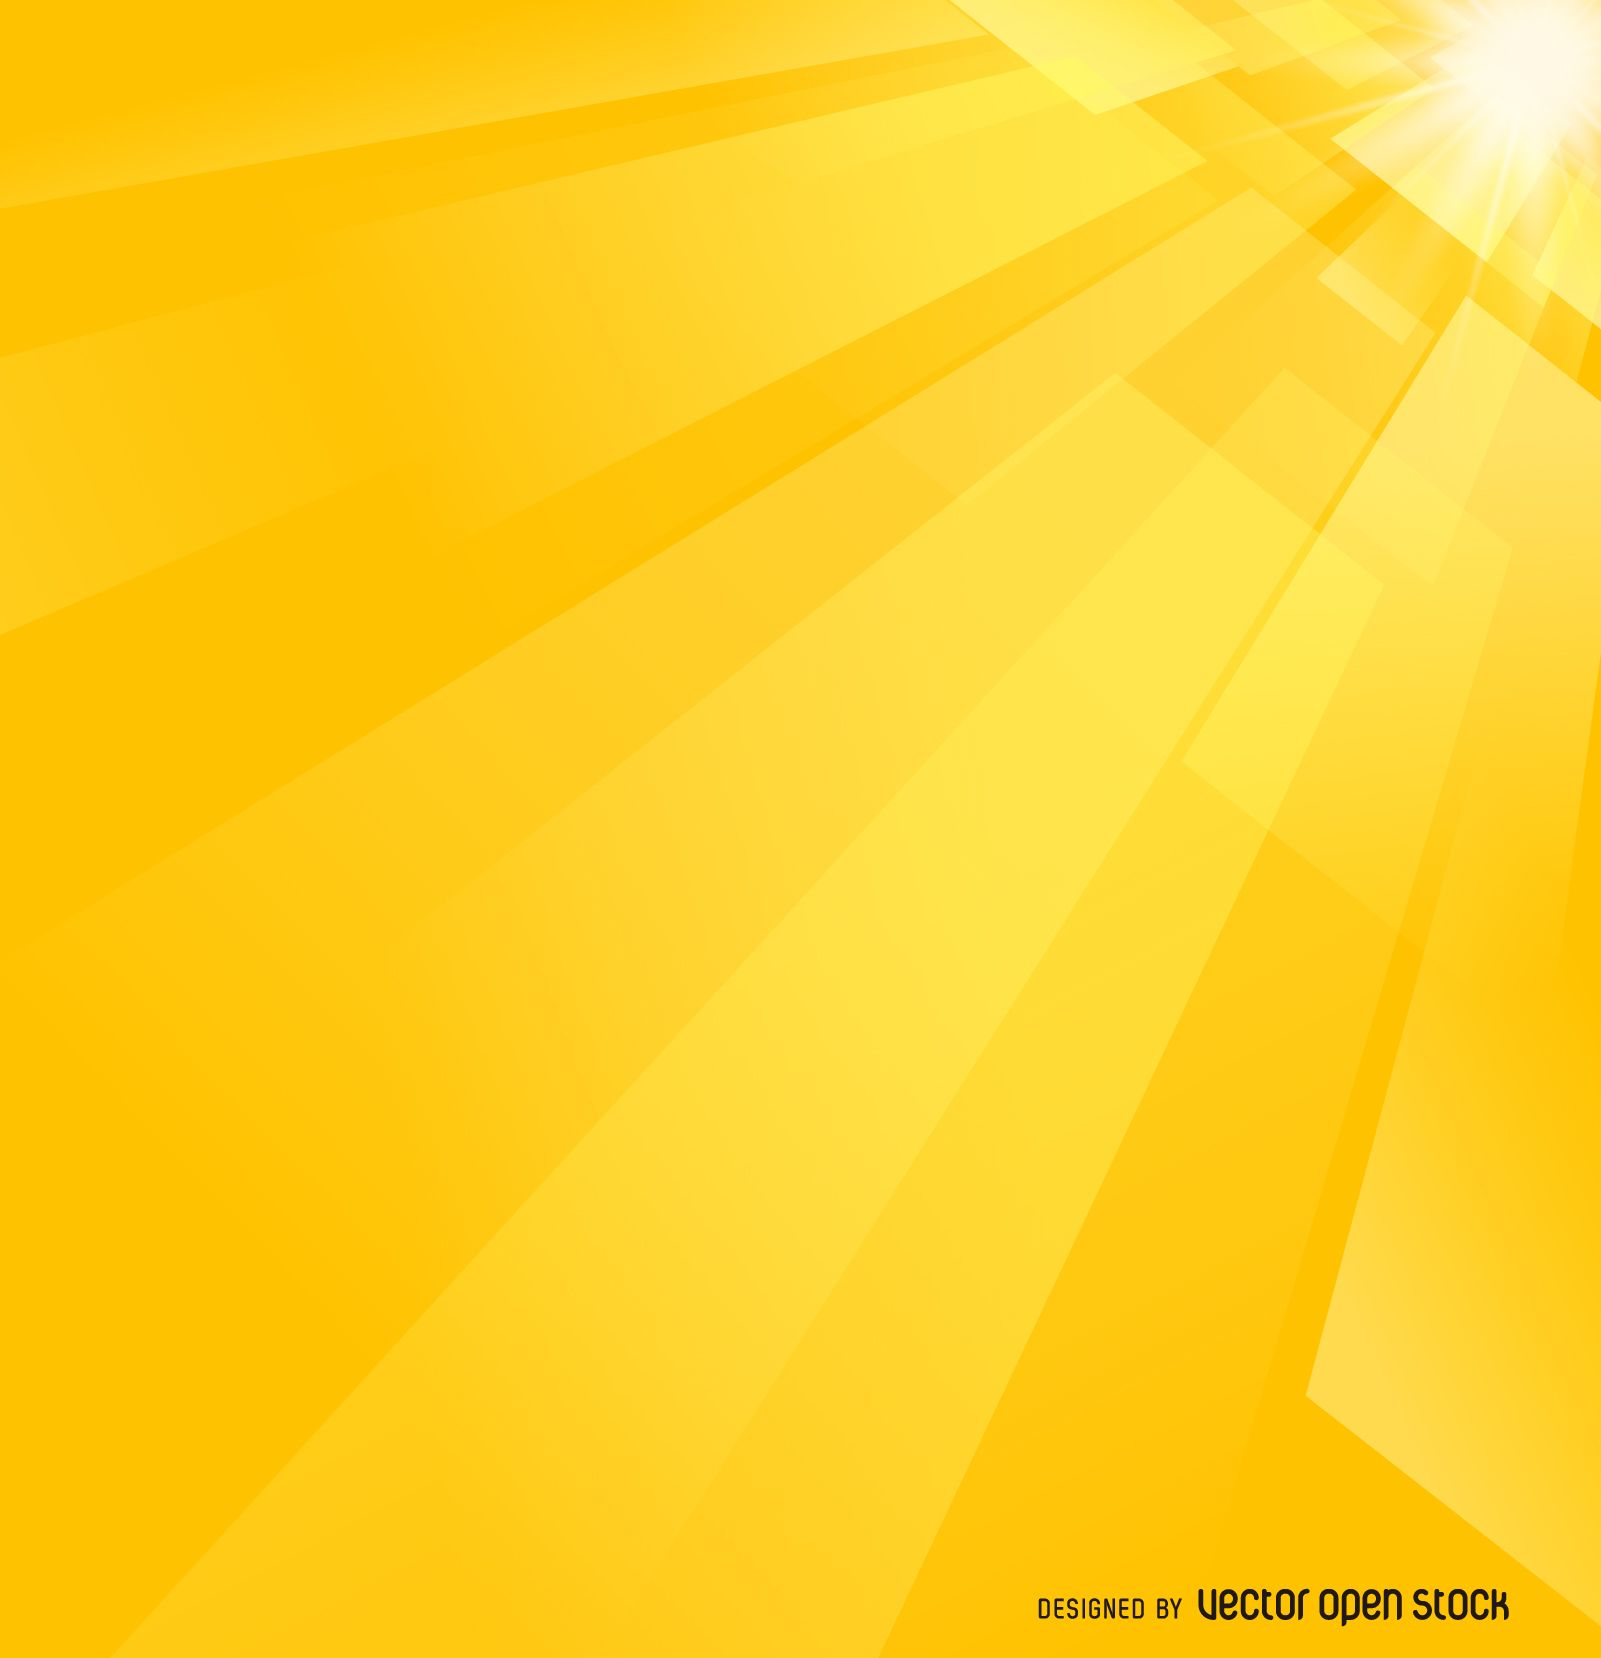 Abstract Background With Geometric Shapes In Tones Of Yellow Bright Design